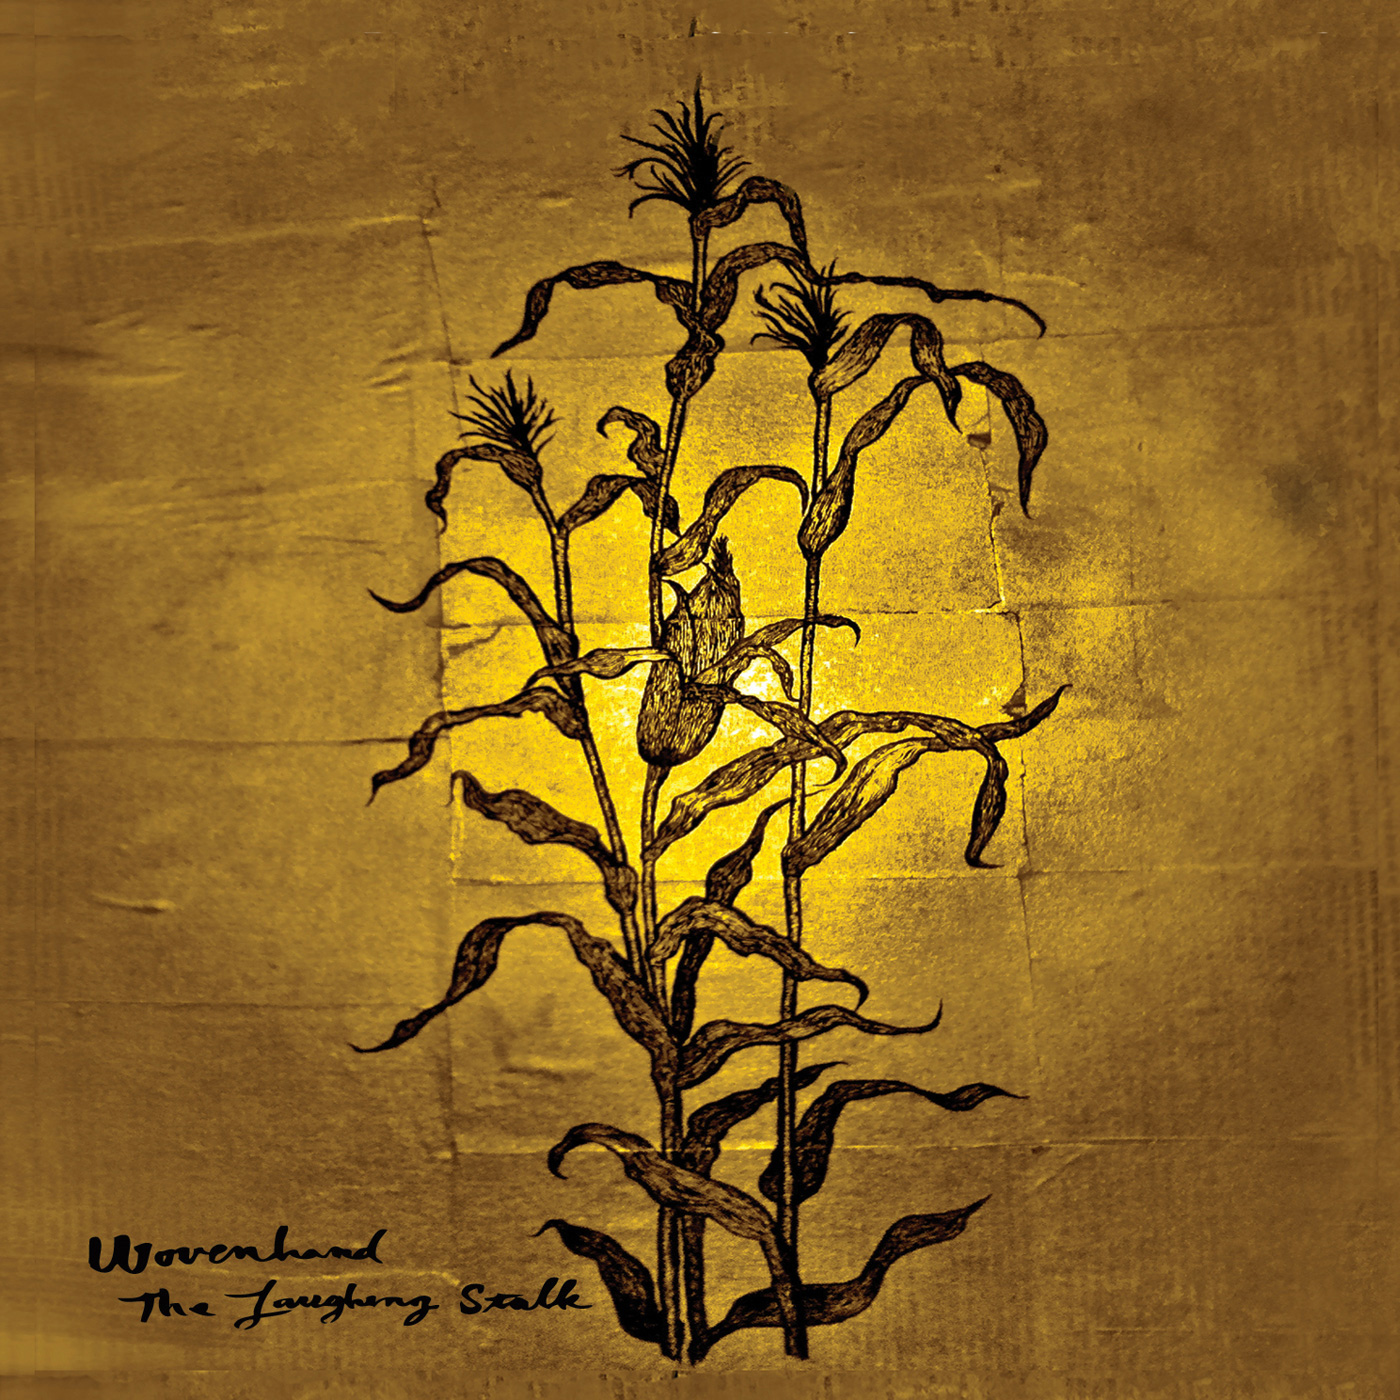 The Obelisk: AT A GLANCE: Wovenhand, The Laughing Stalk